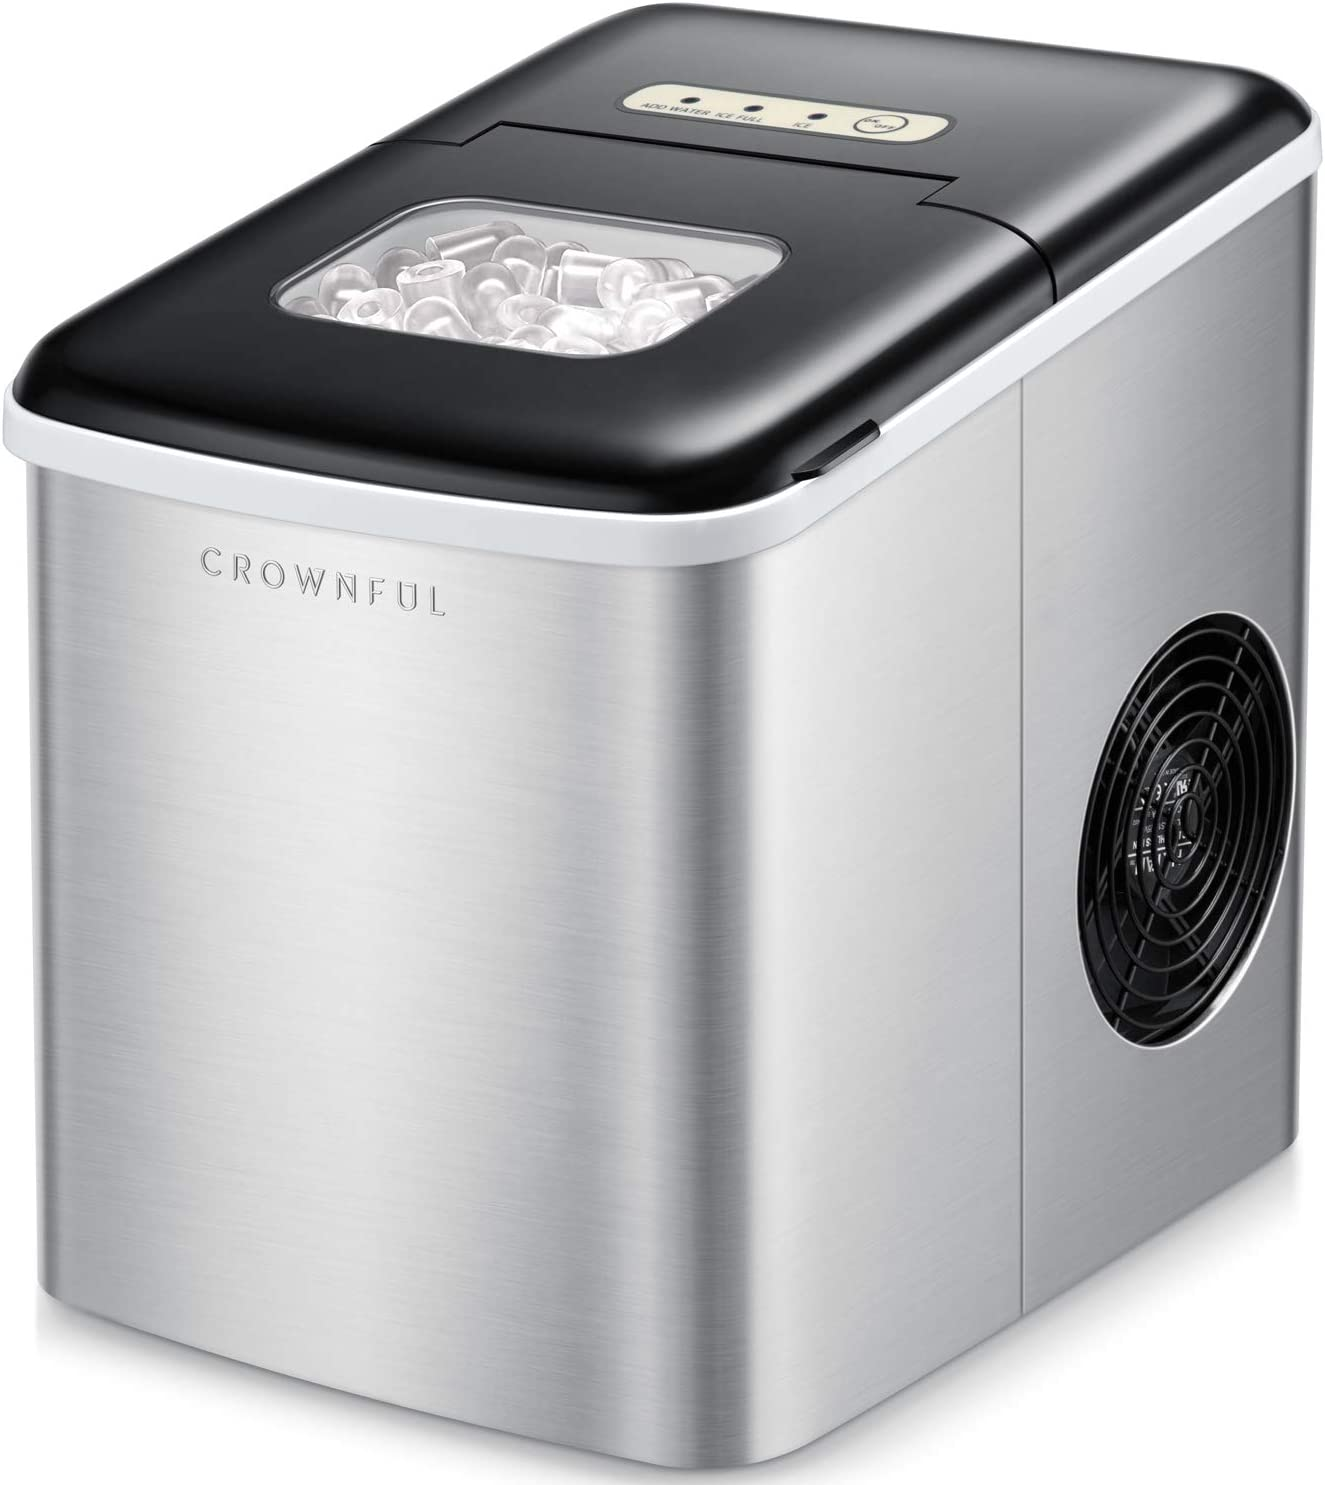 Crownful 26 lbs Portable Countertop Ice Maker